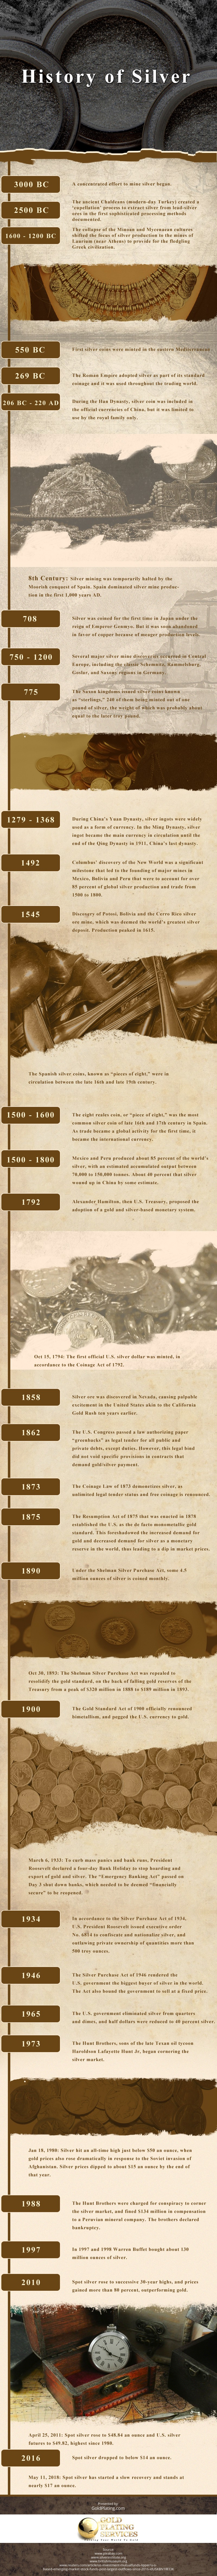 History of Silver